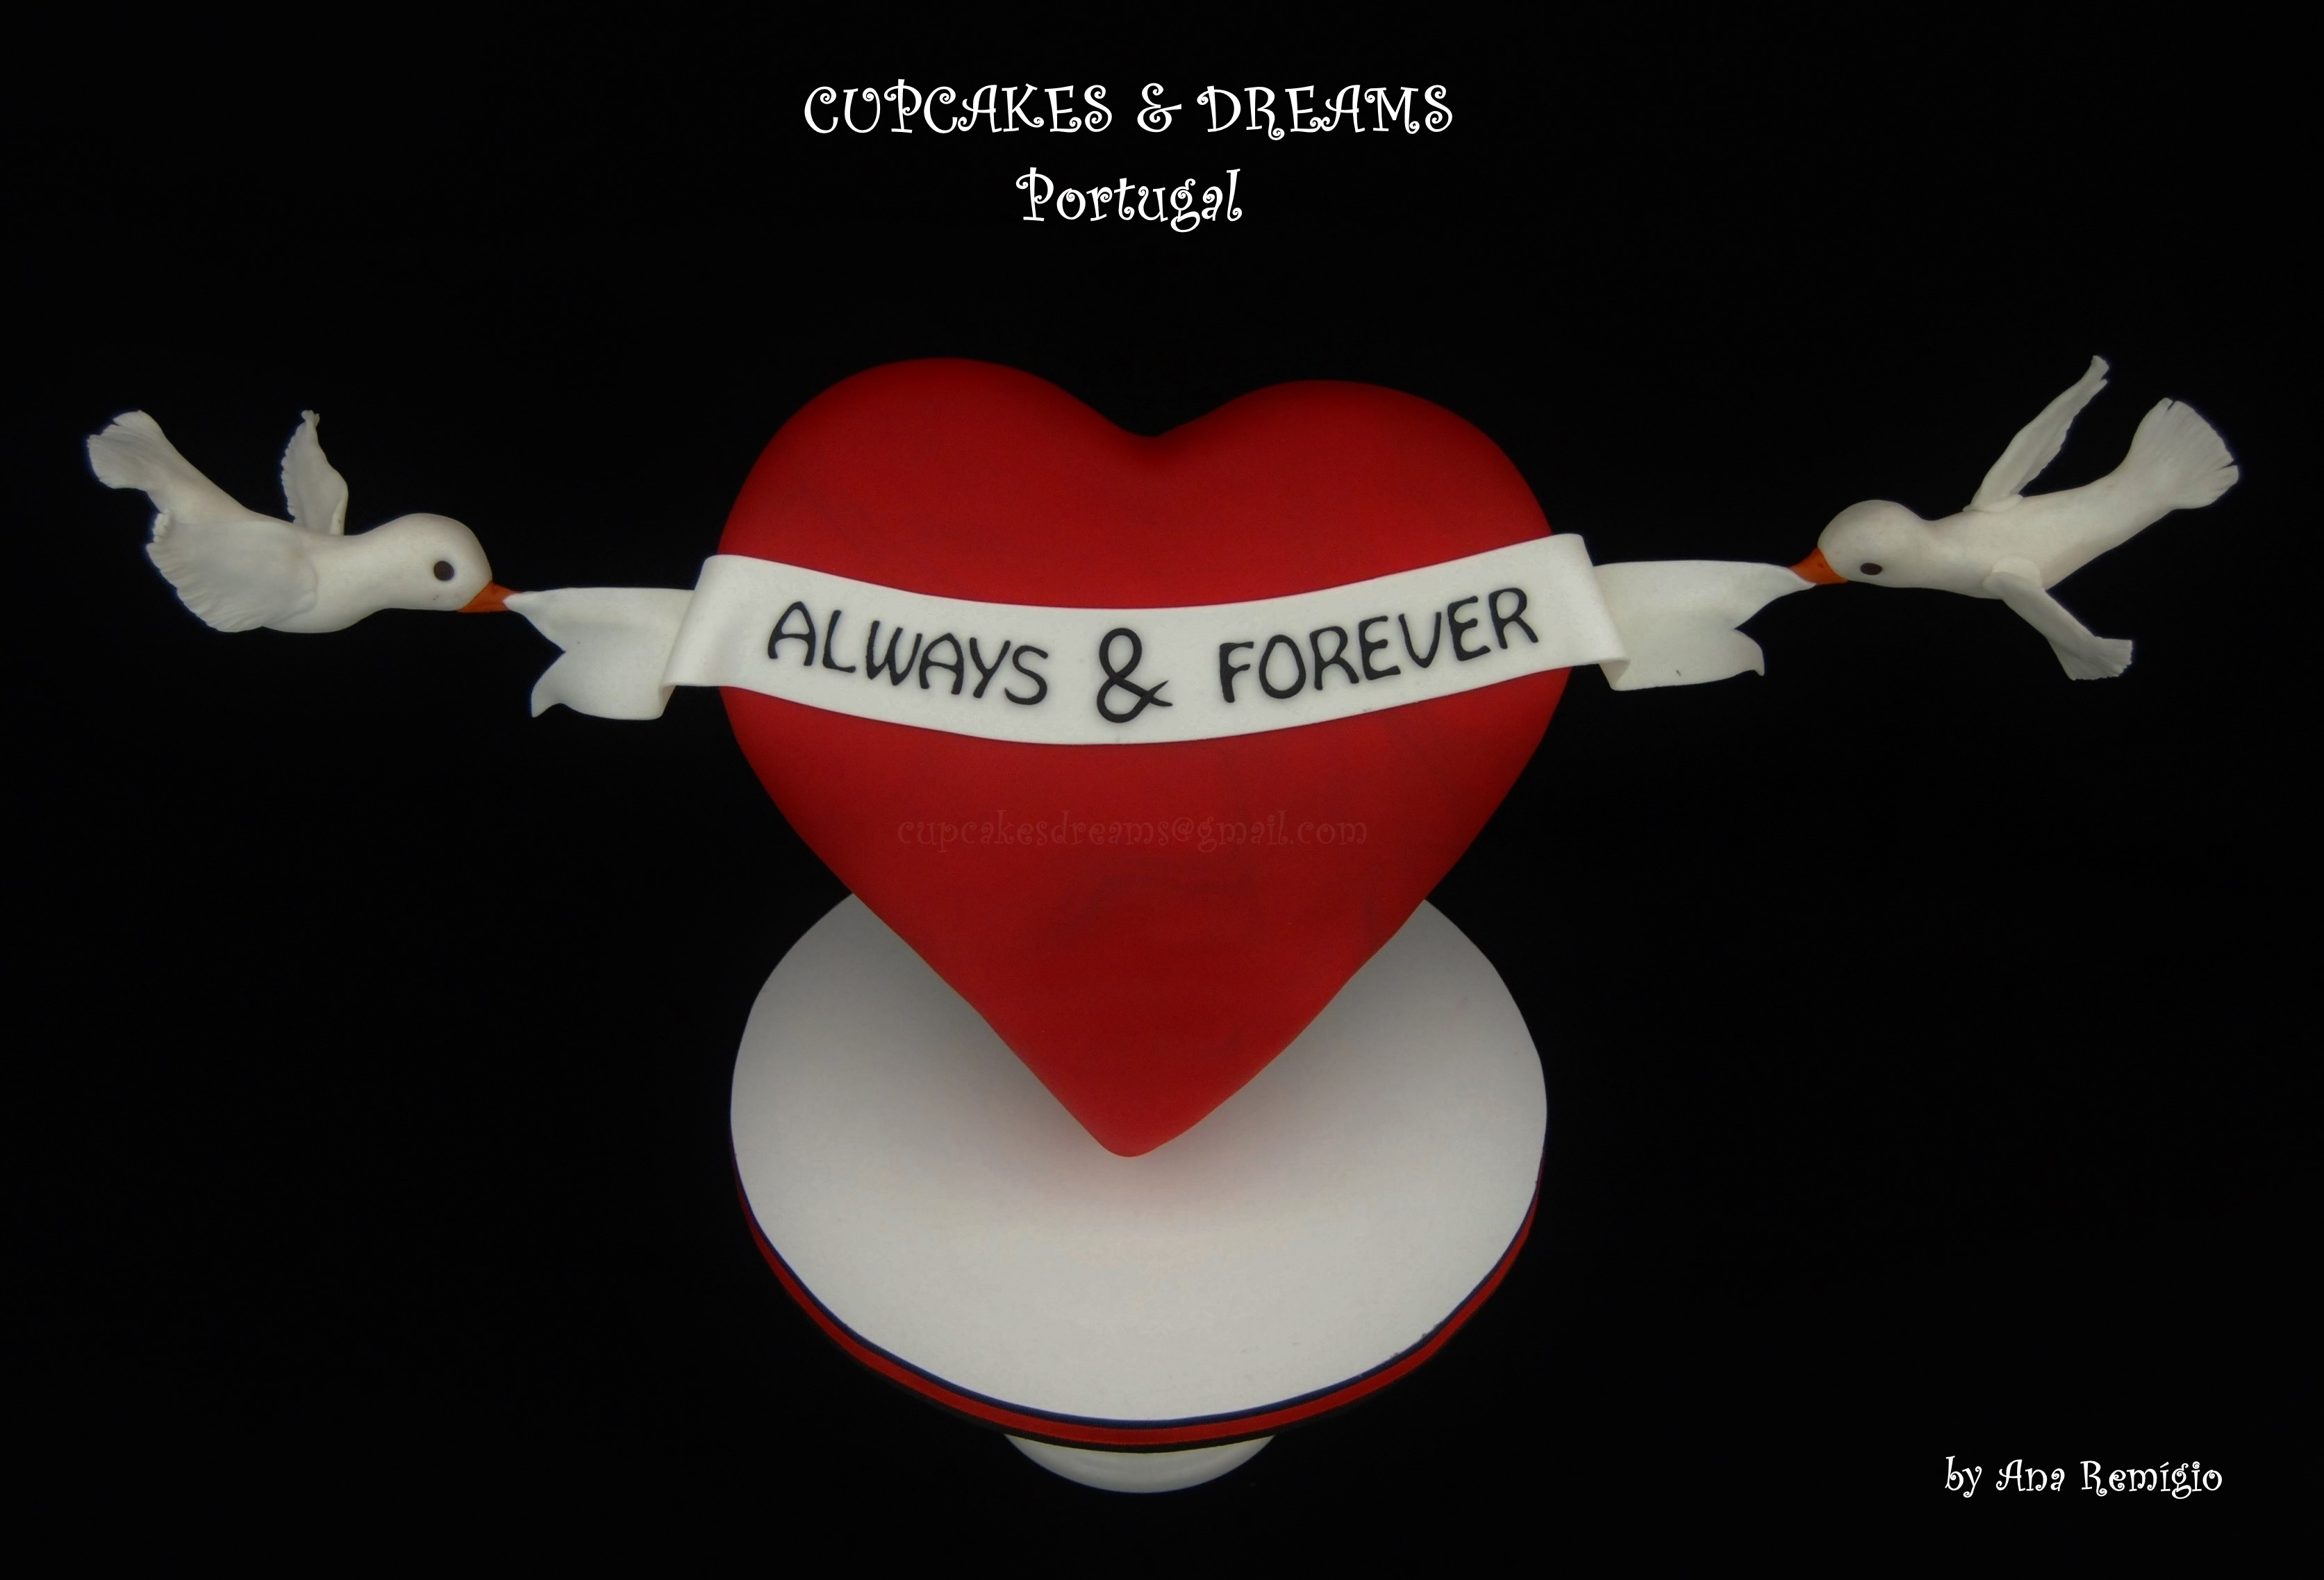 Always & Forever 3D Defying Gravity Heart Cake